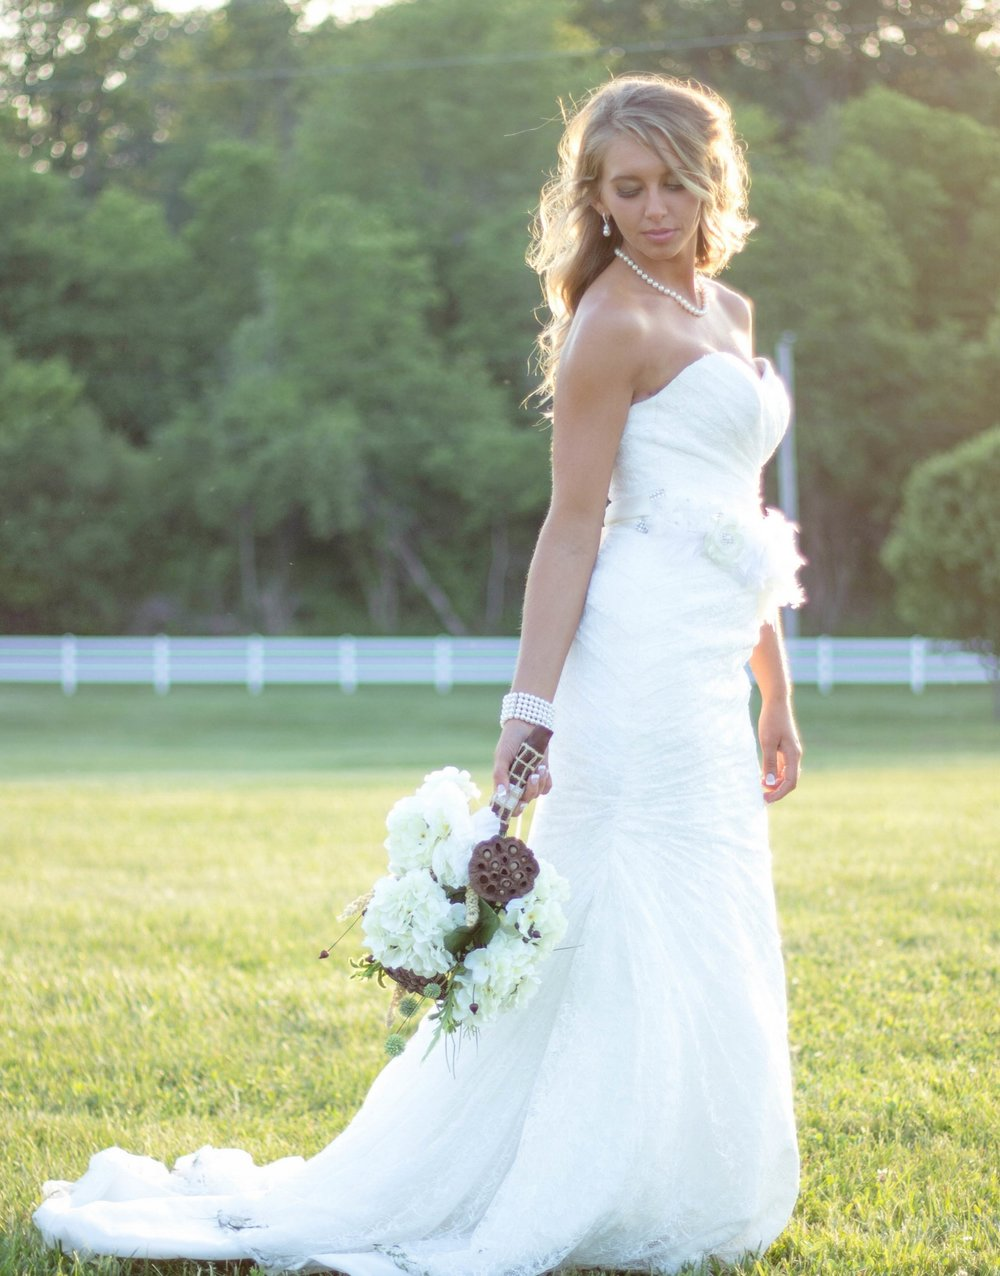 Bailey- A long time friend, high school soccer teammate, and my first bride! (Told you she was radiant!)She made these photos much more beautiful than I did.